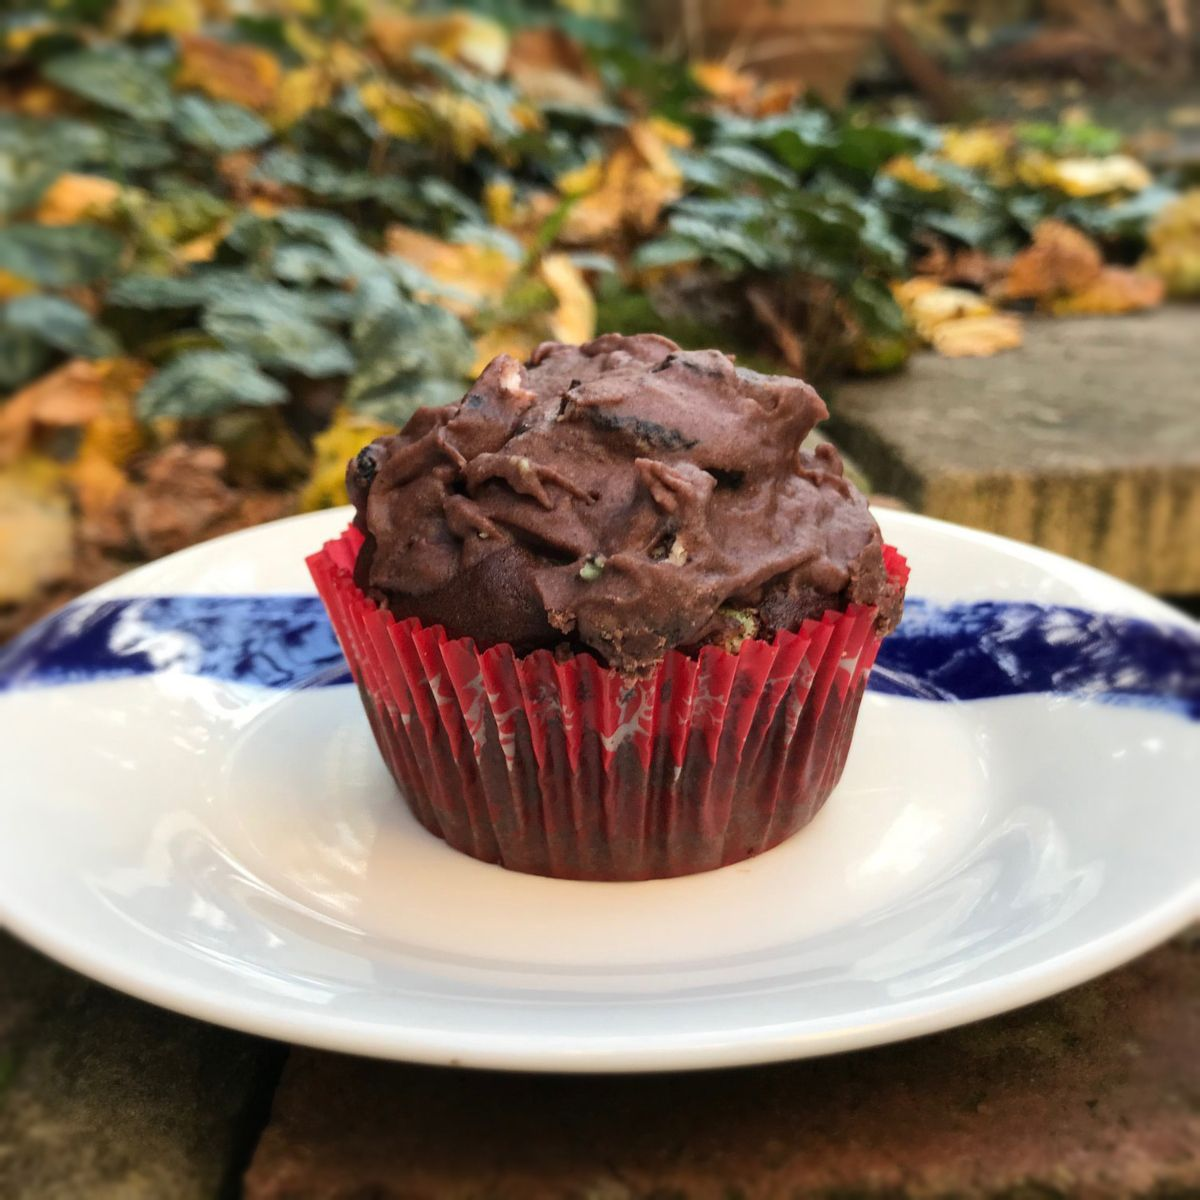 Vegan Cookies And Cream Cupcake Allergymums Recipe In 2020 Vegan Cookies Fun Baking Recipes Cookie And Cream Cupcakes